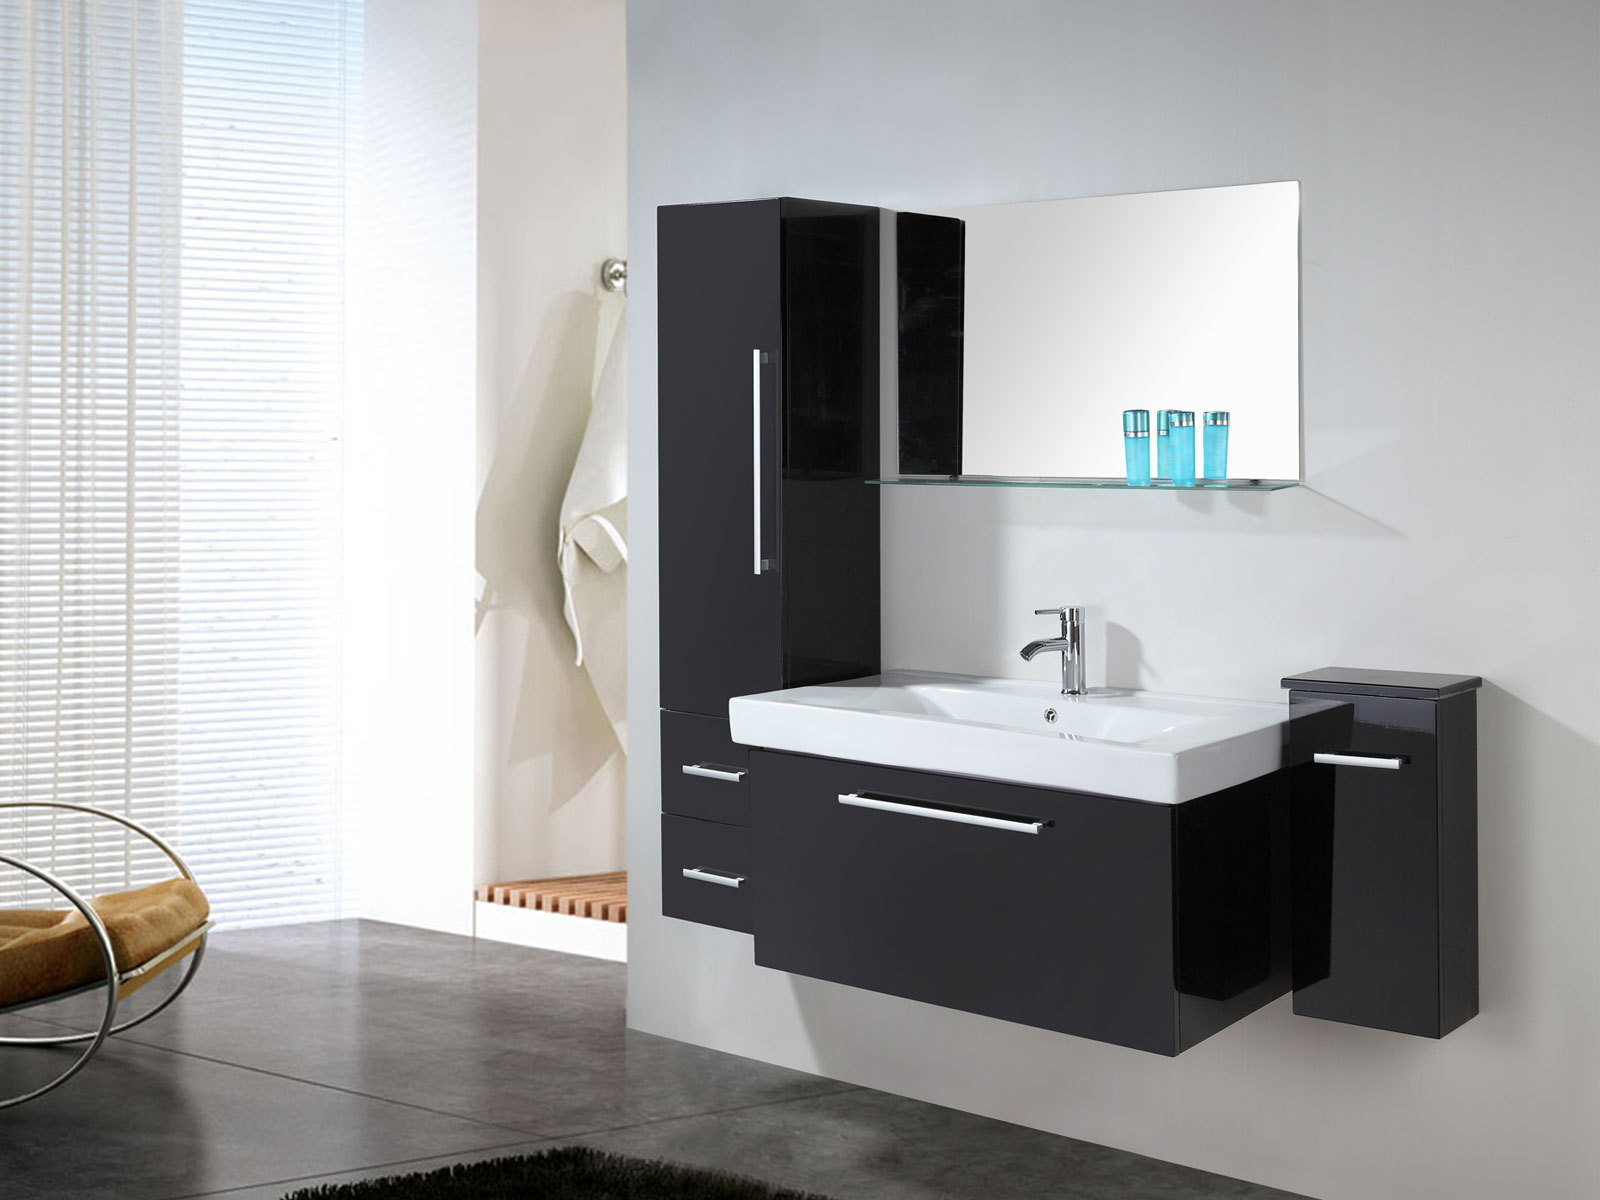 London - Mobile bagno arredo bagno 100 cm lavabo e colonne incluse ...